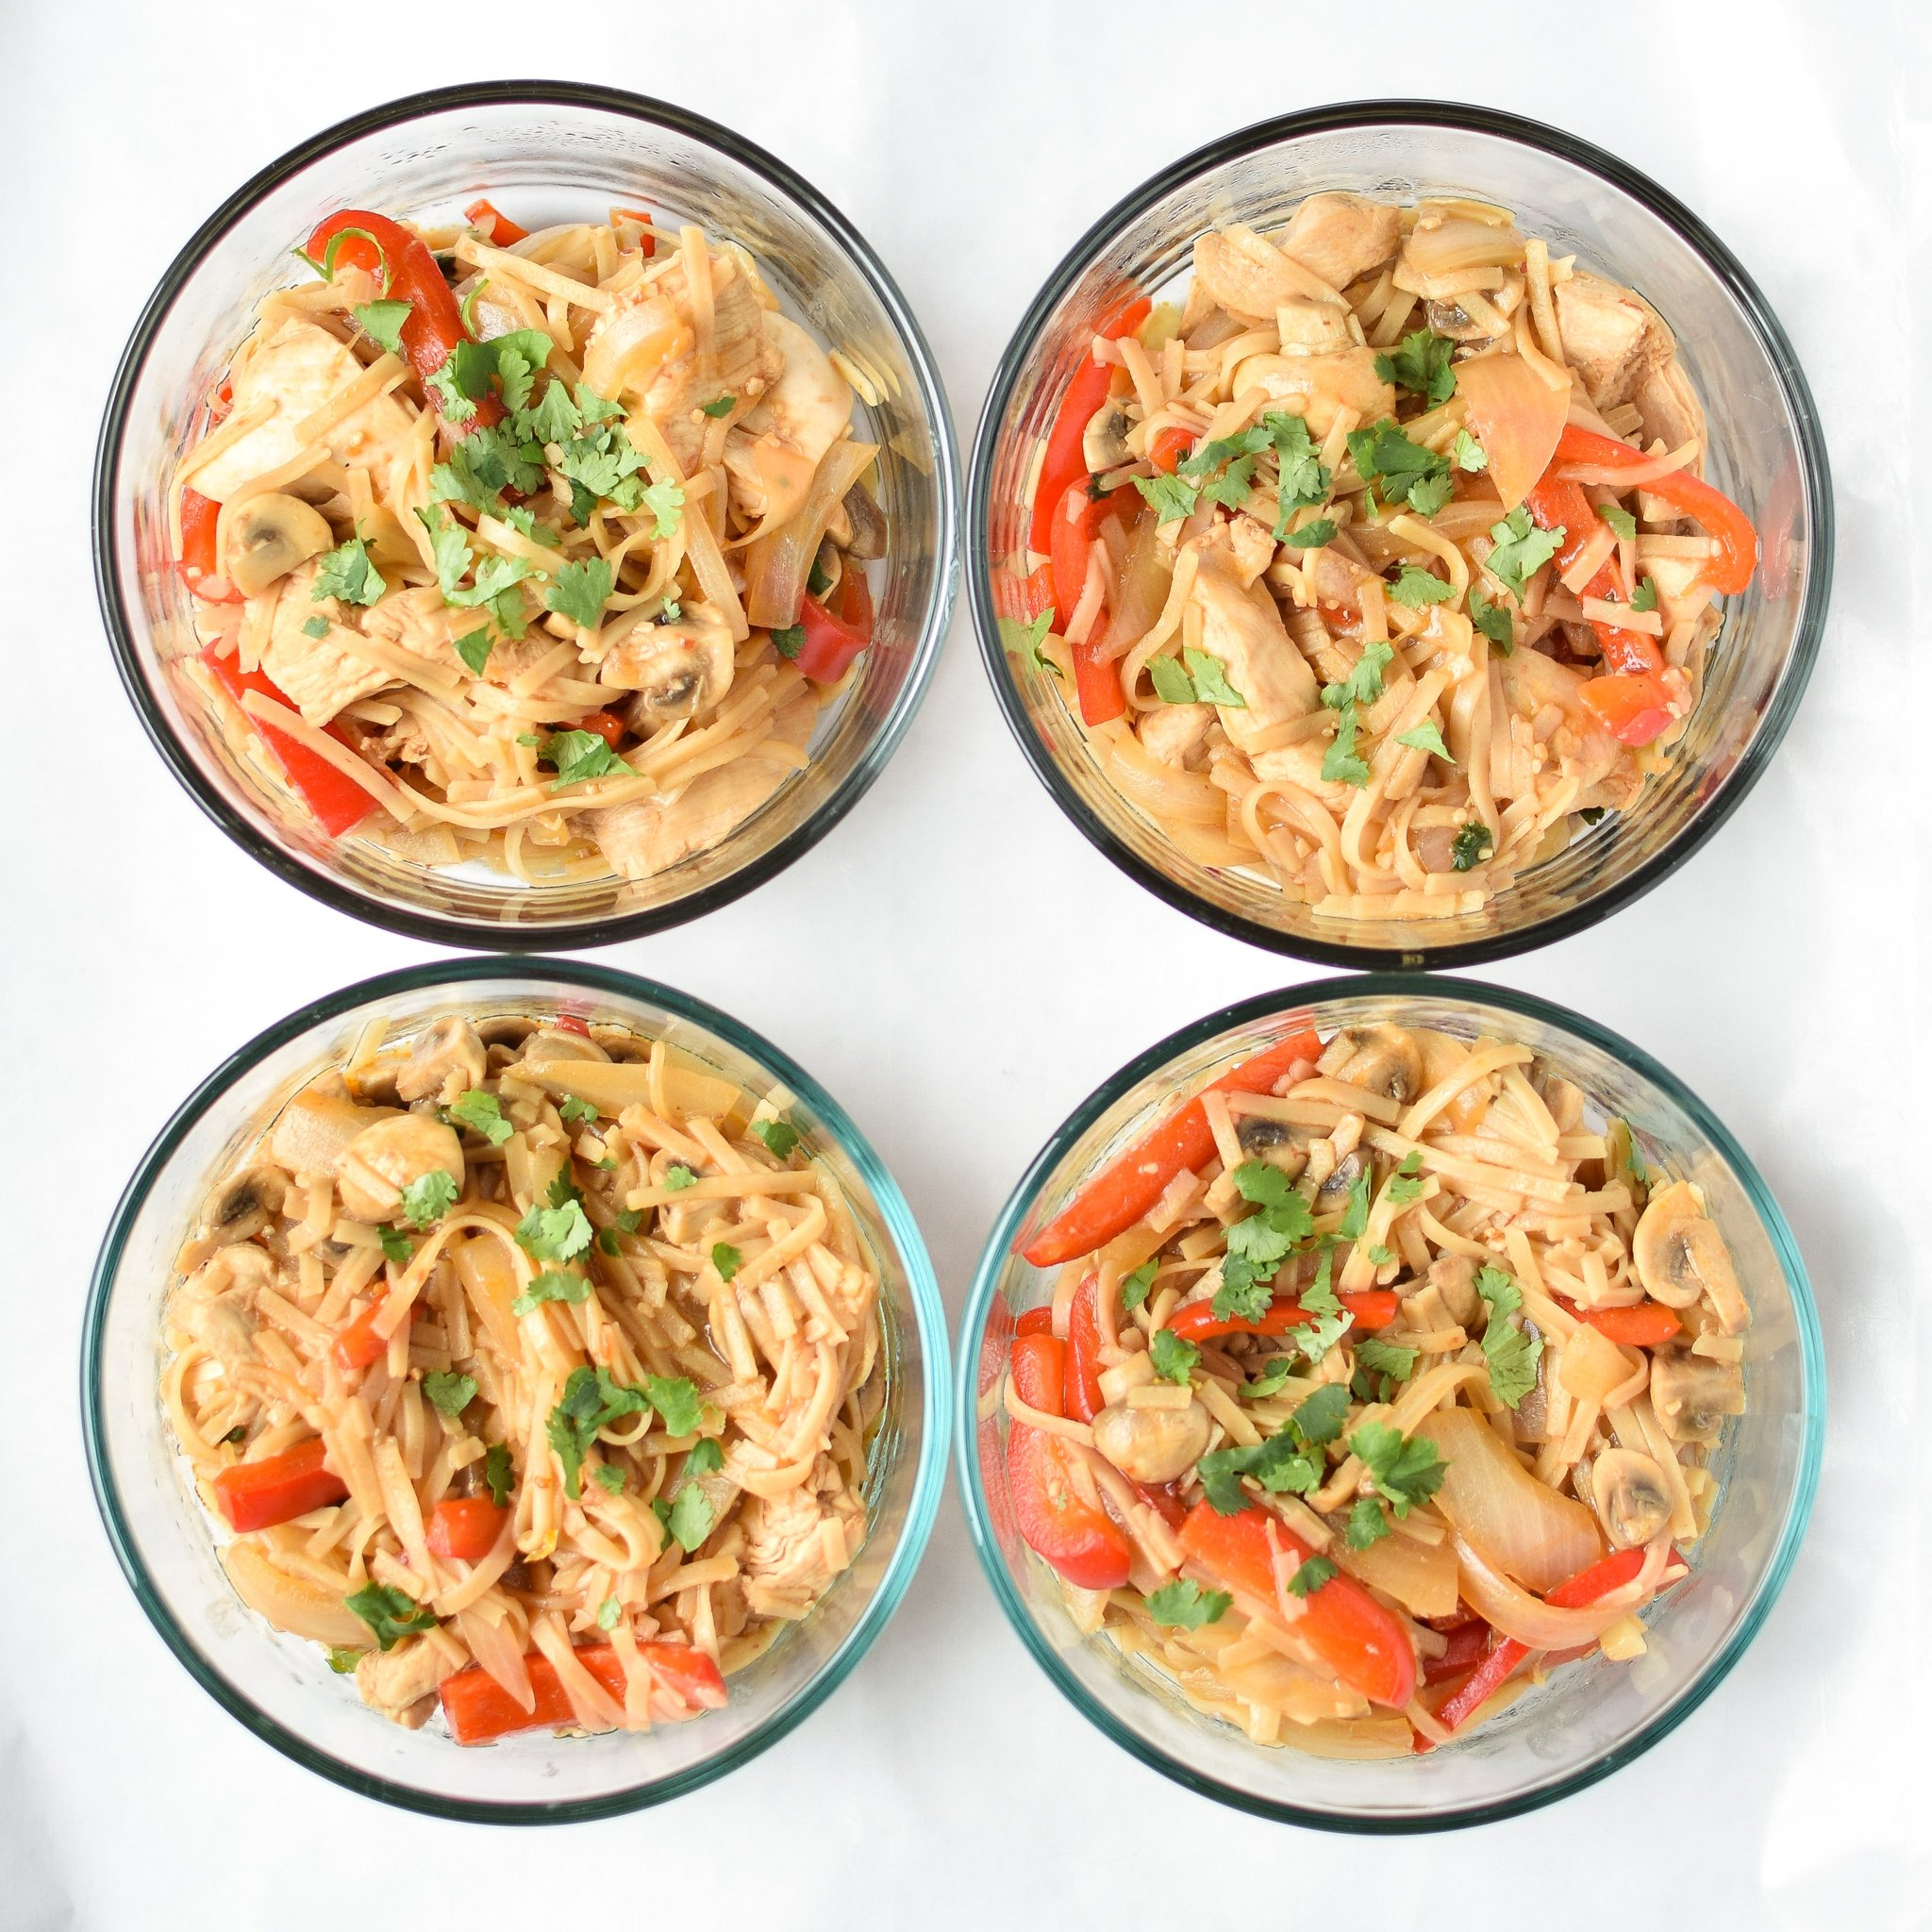 Sunday Meal Prep for March 5th, 2017 - Sunday Meal Prep Steps, shopping list, macro counts and more! - ProjectMealPlan.com